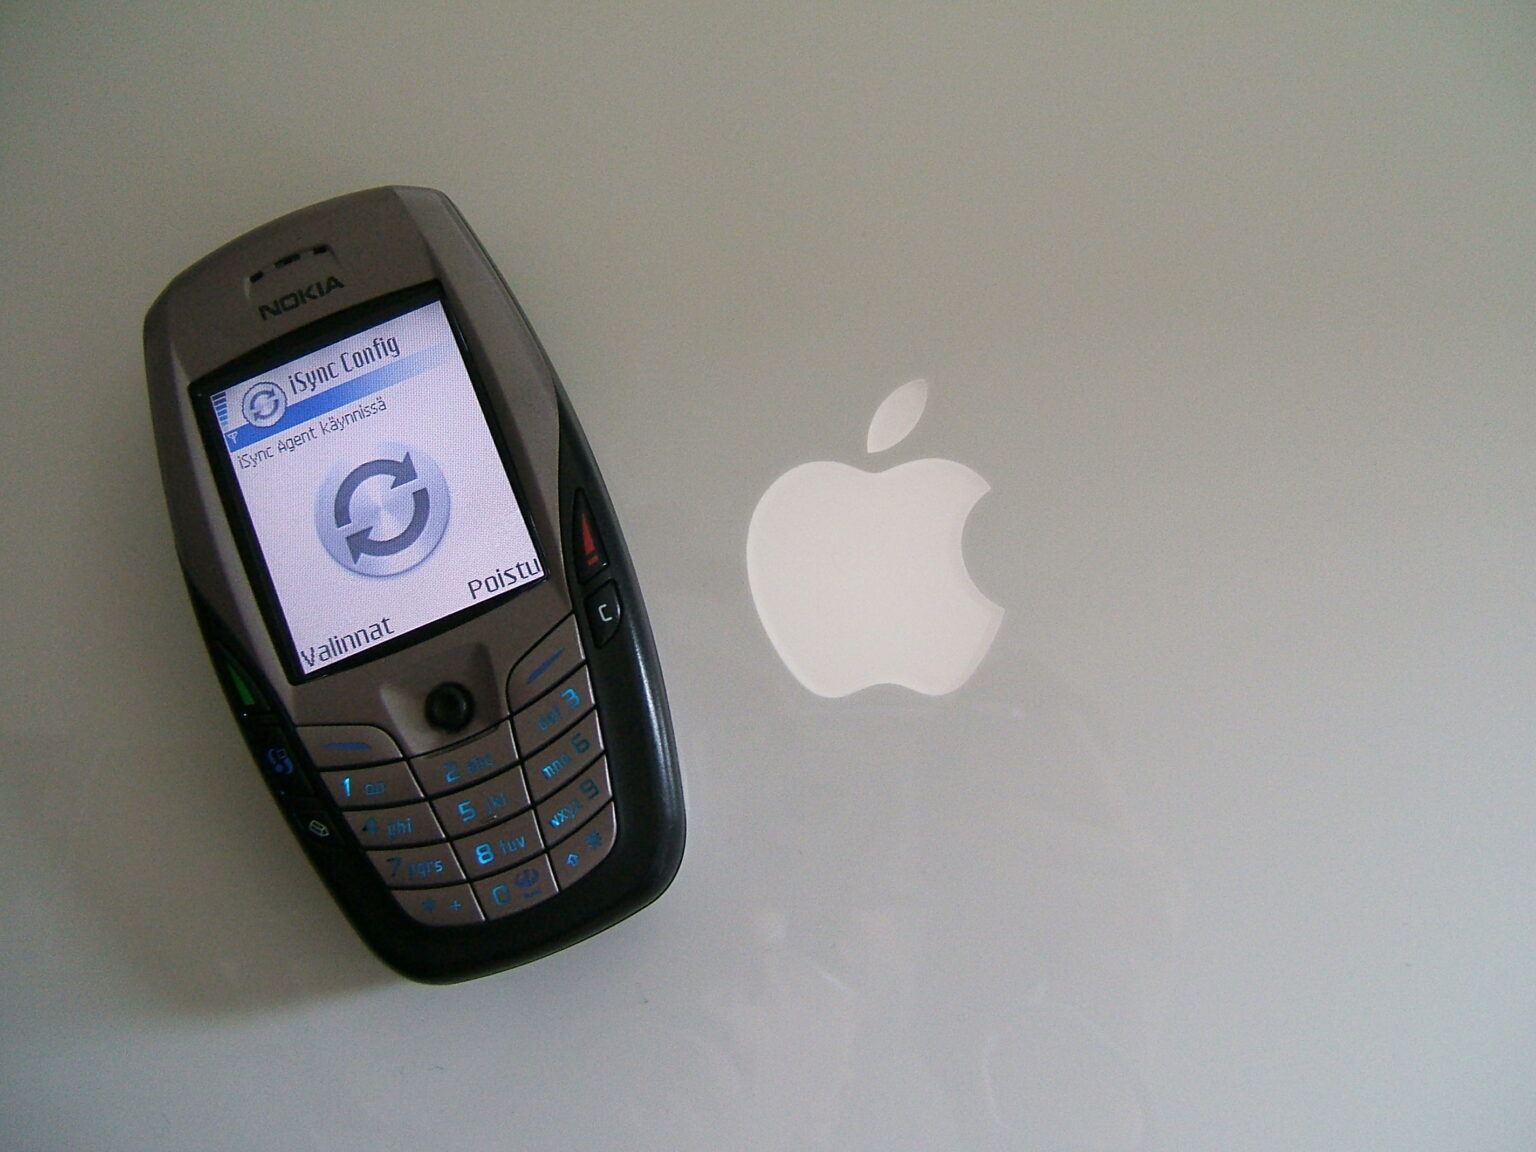 Today in Apple history: Macs get that syncing feeling as Apple launches iSync. It was a killer app for its time.